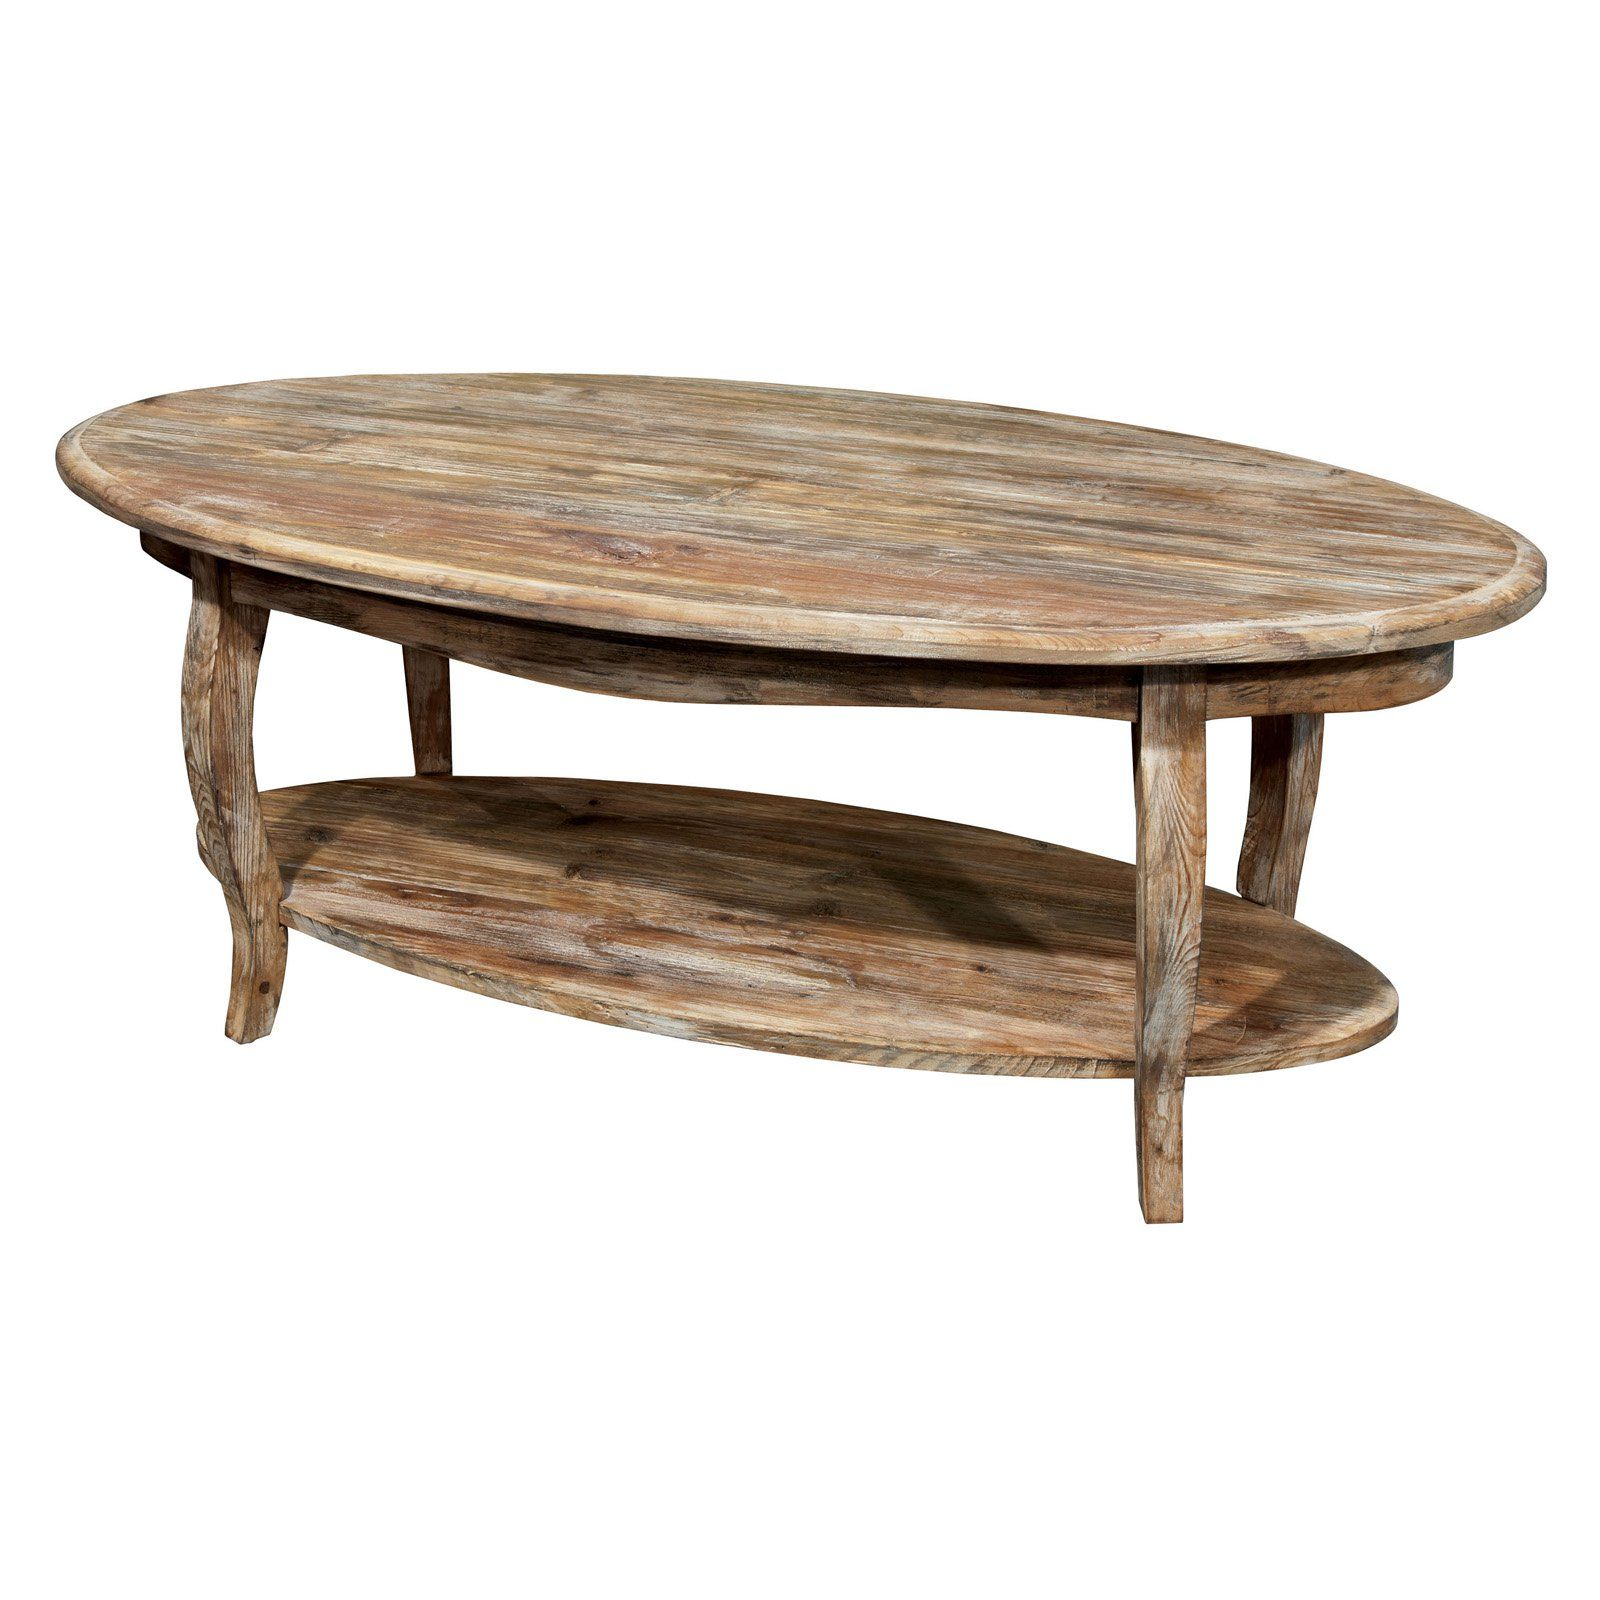 - Alaterre Rustic Reclaimed Driftwood Oval Coffee Table Oval